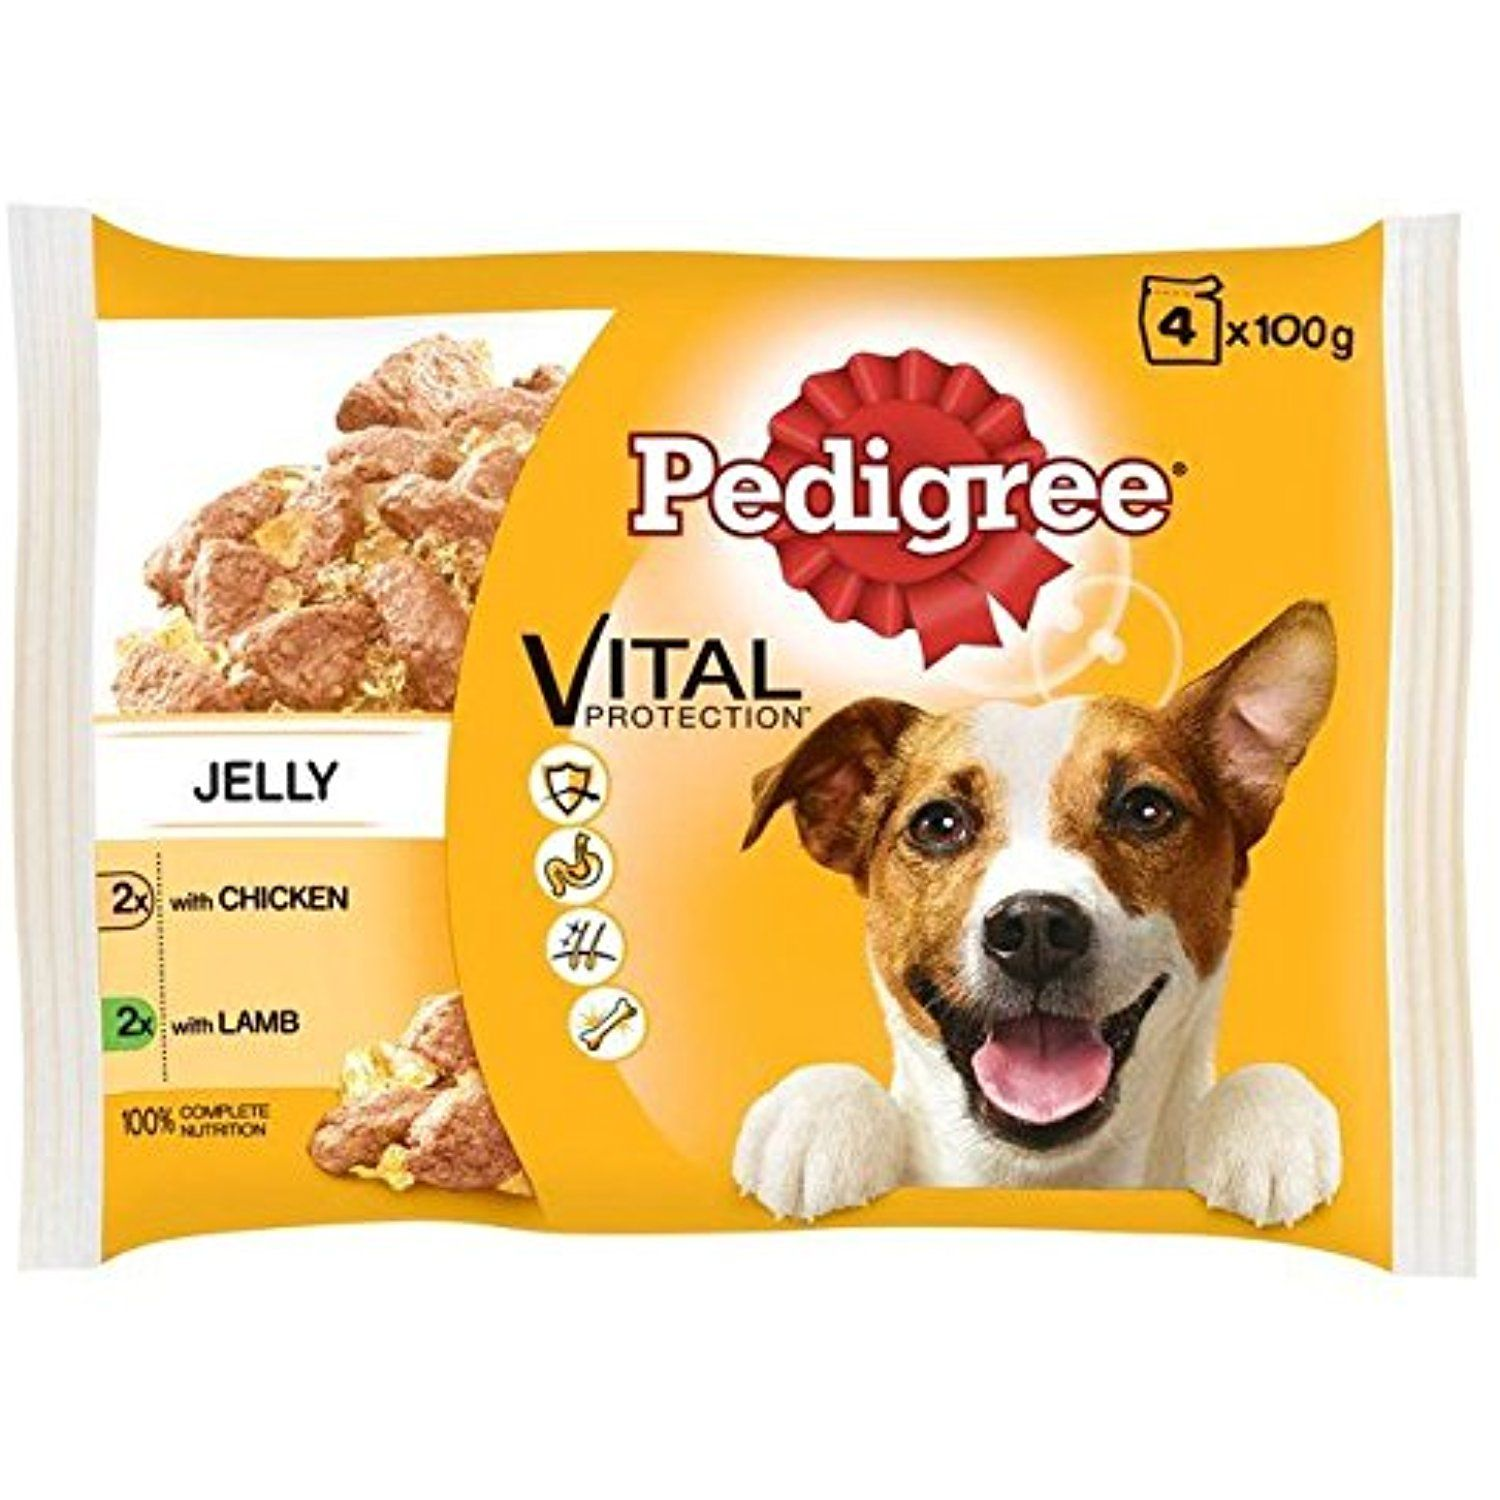 Pedigree Dog Pouch Chicken Lamb In Jelly 4 X 100g For You To